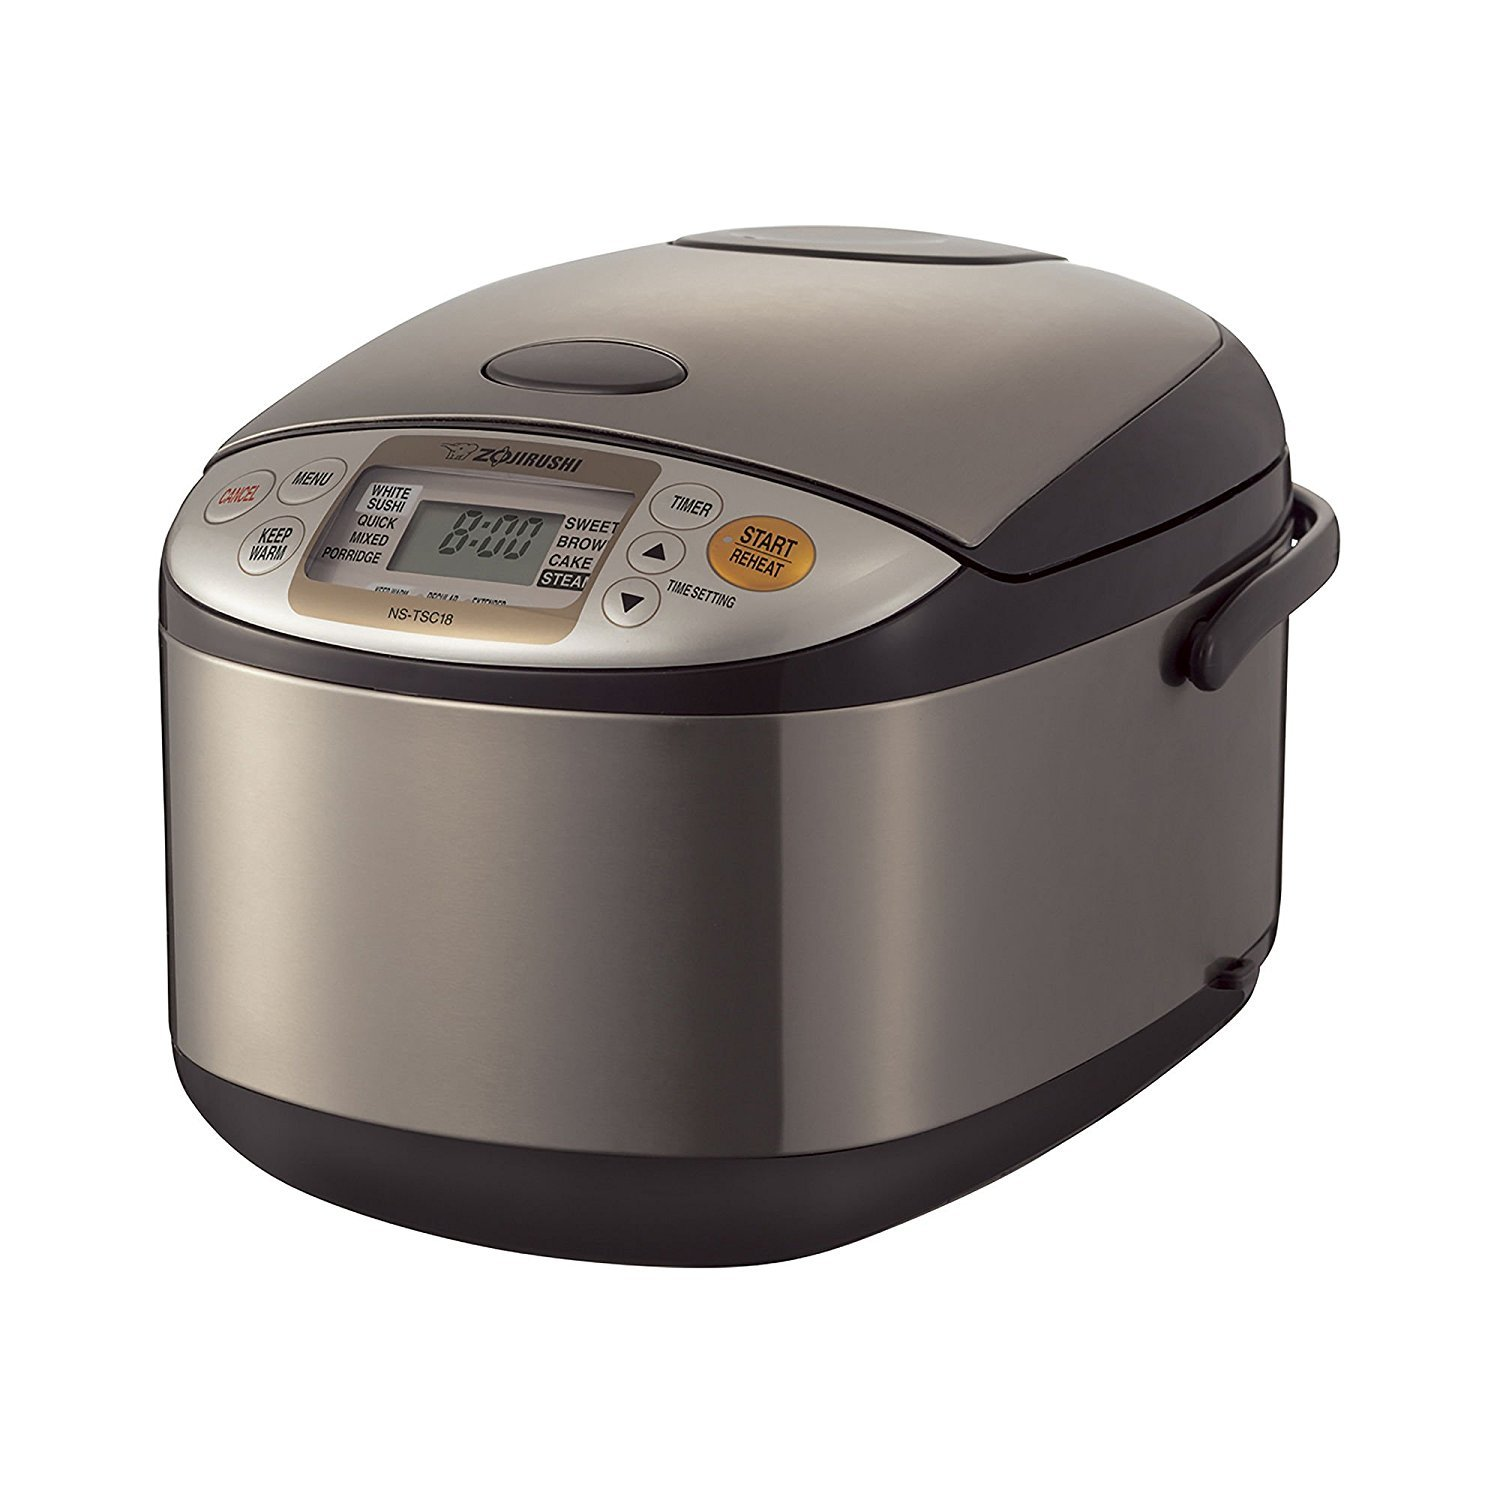 Zojirushi Micom Rice Cooker & Warmer, NS-TSC18 - 10 cups / 1.8 liters